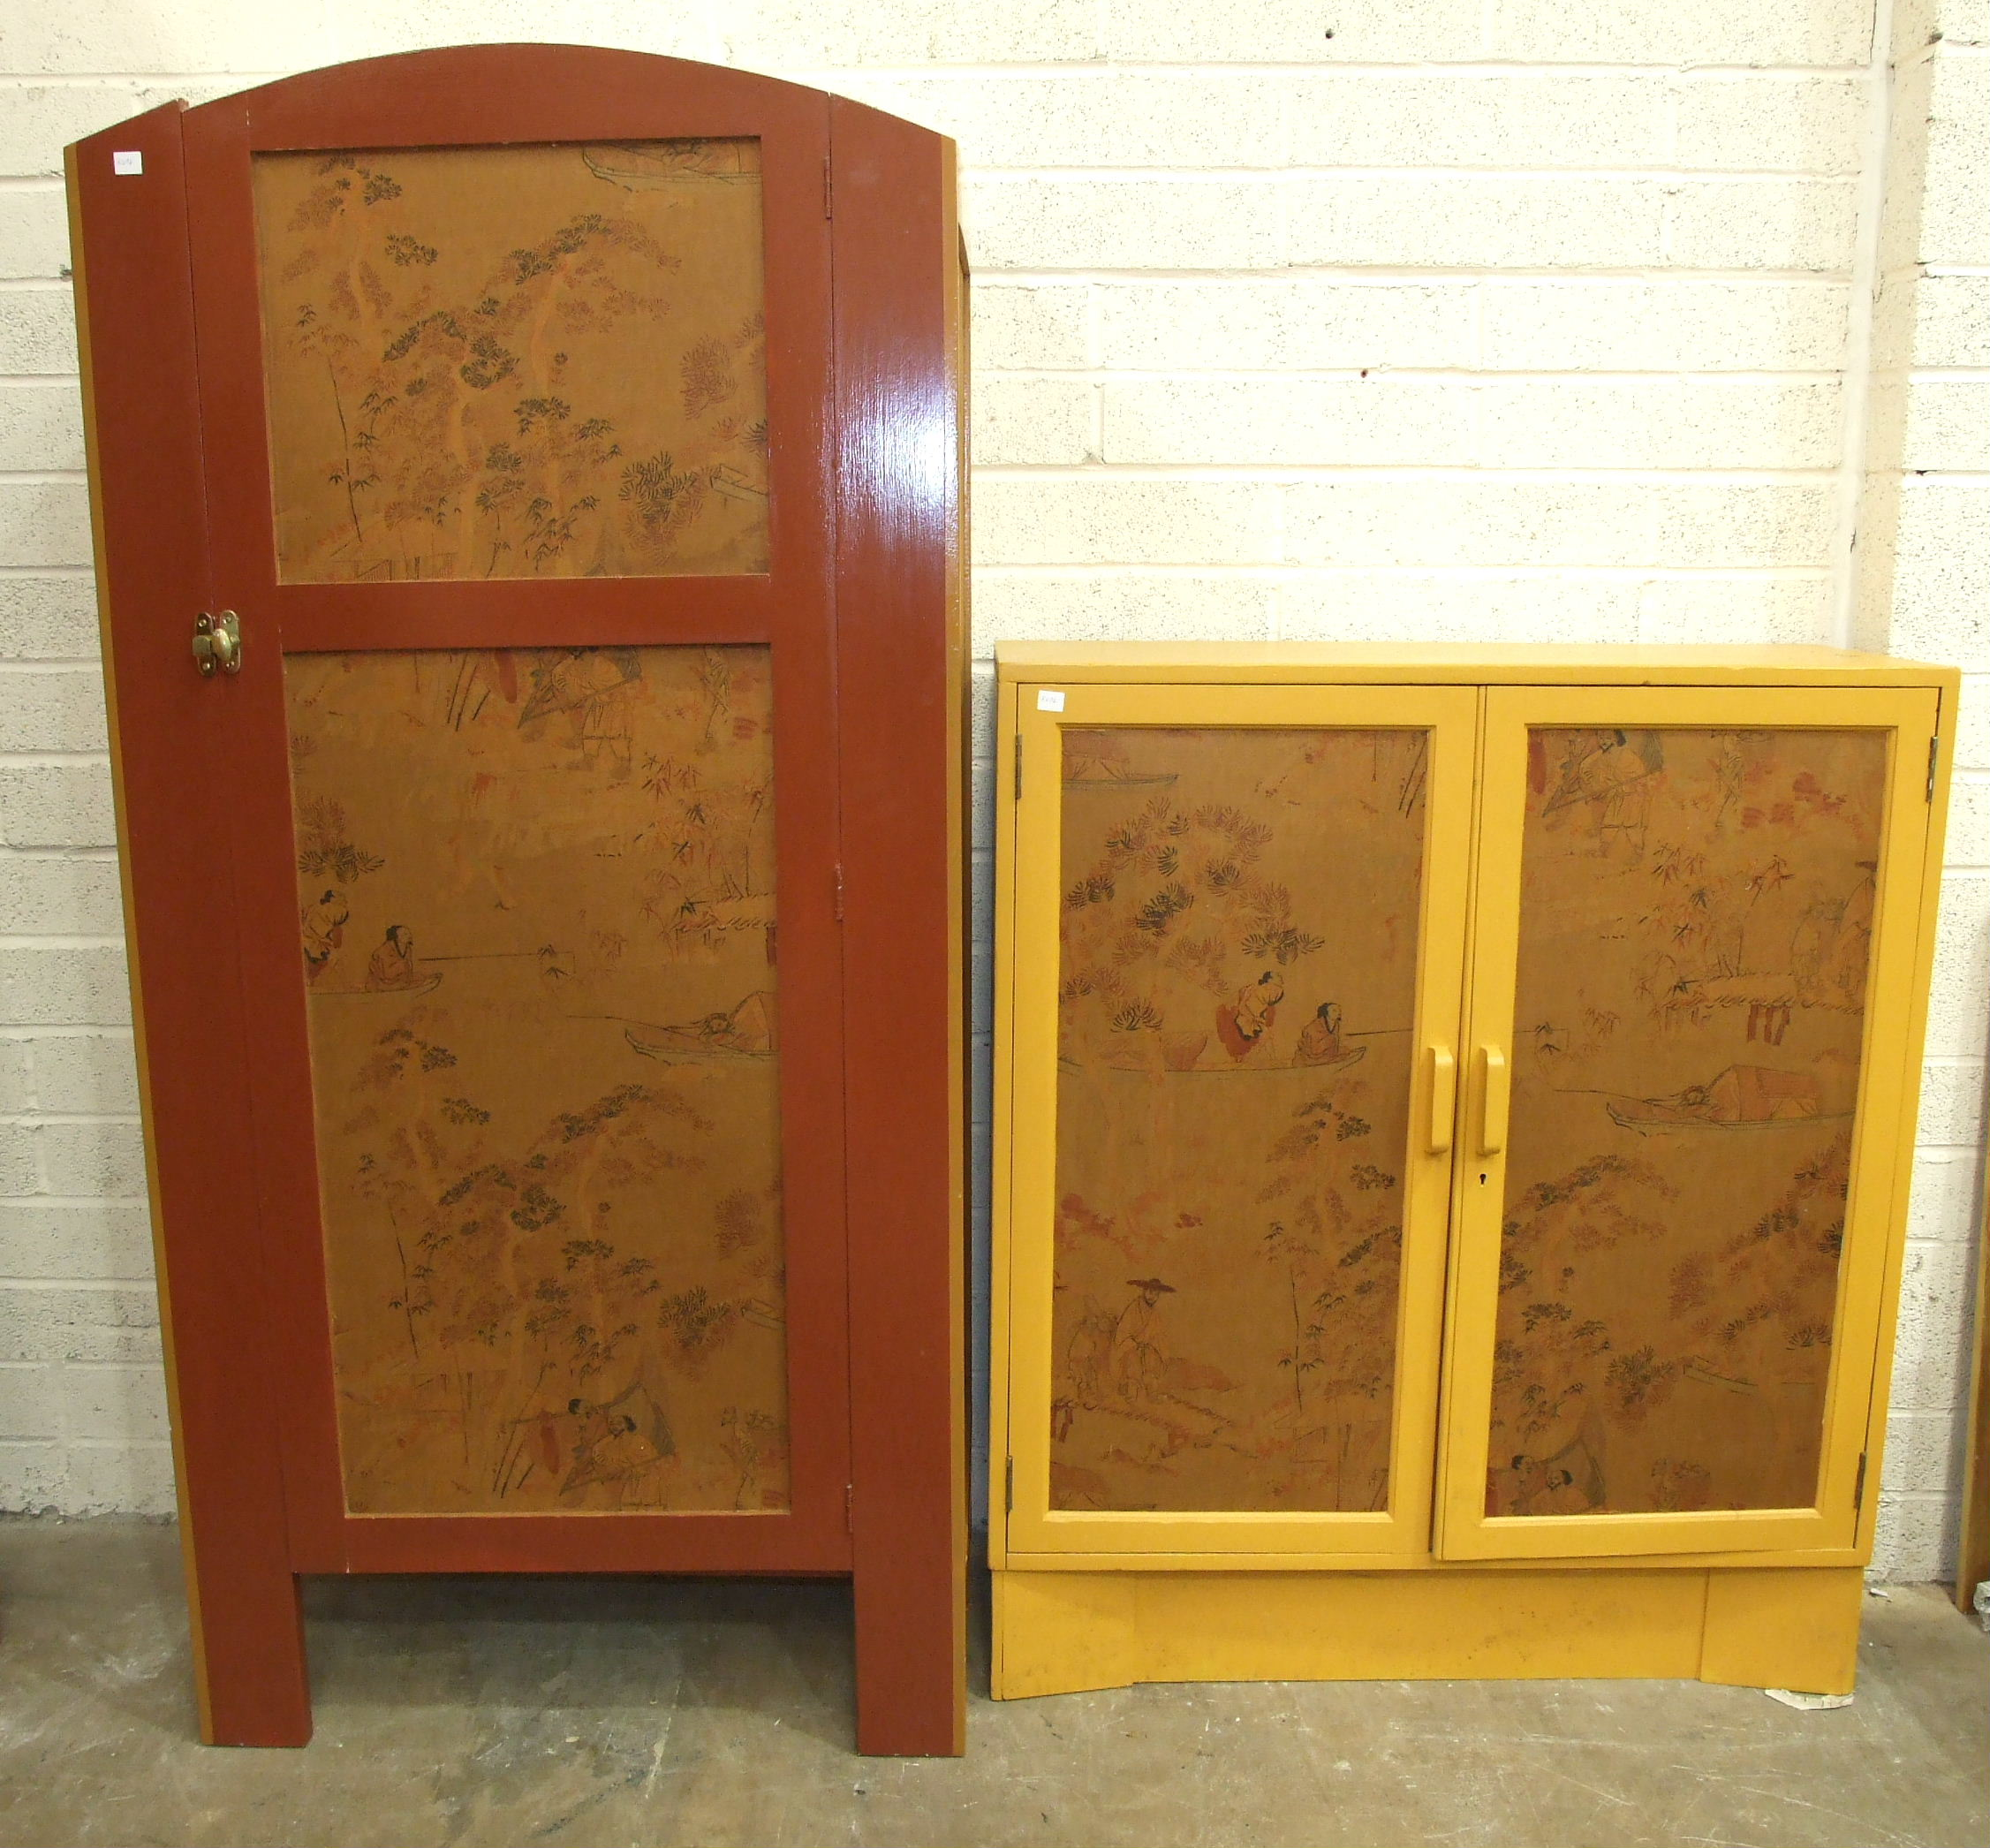 A painted wood cupboard with chinoiserie fabric-covered panels, 85 x 173cm and a similarly-decorated